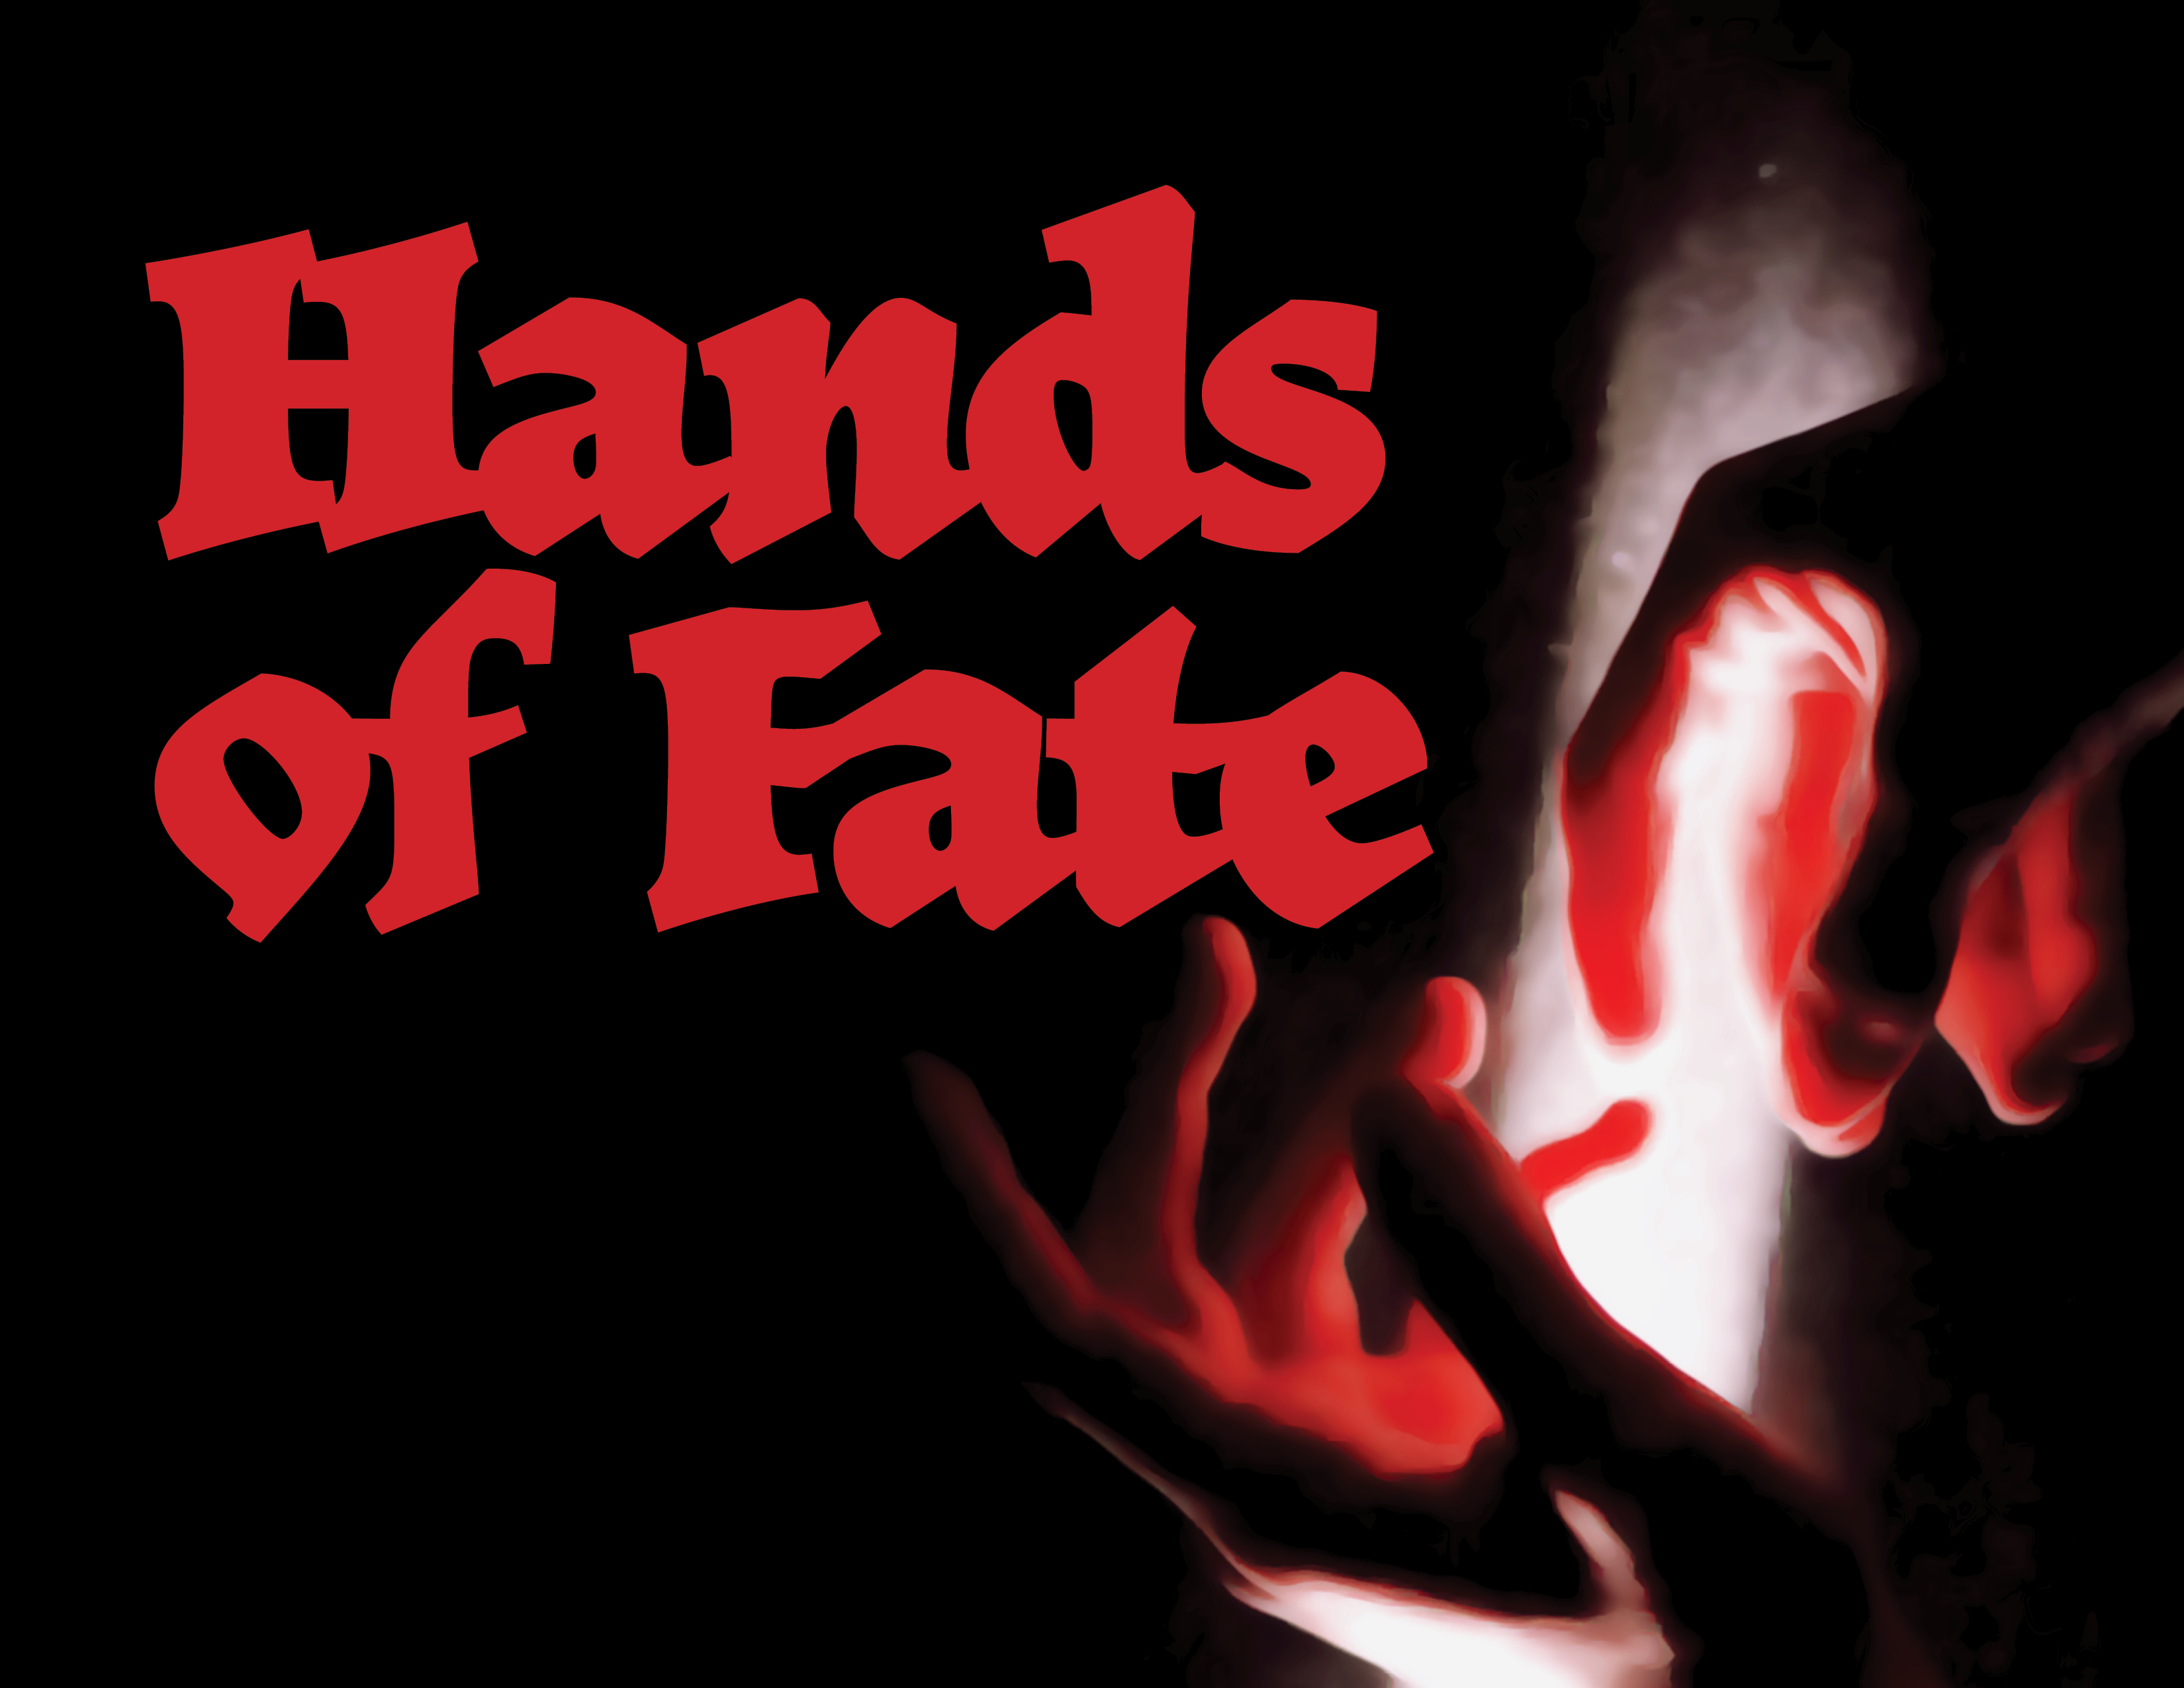 Hands of Fate